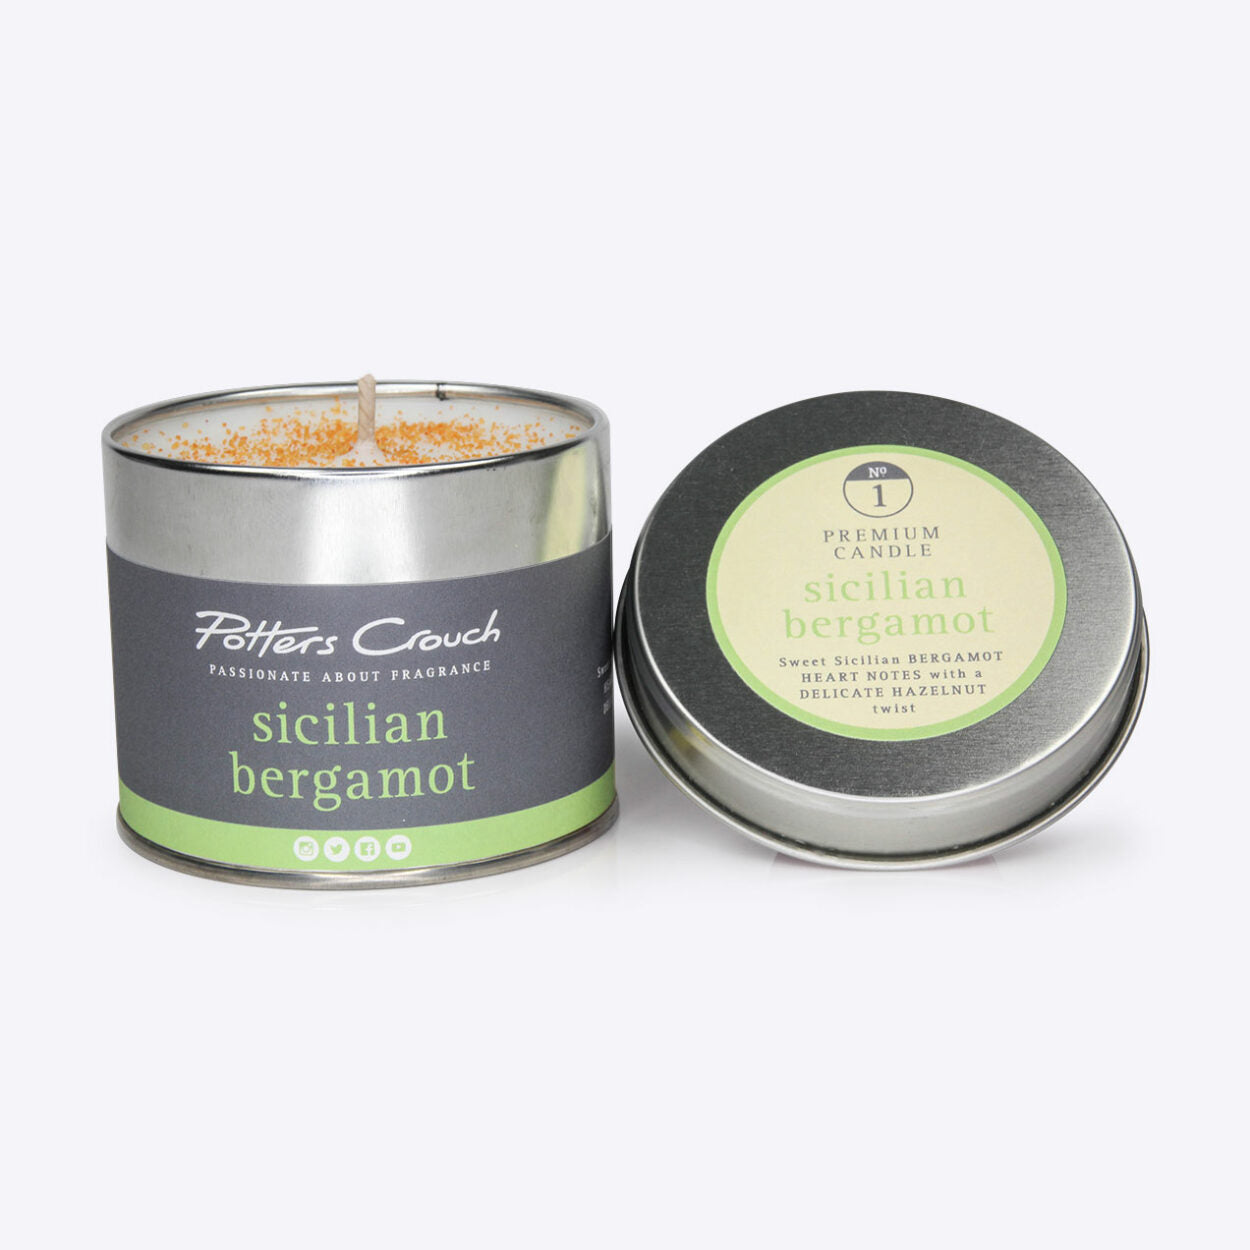 Sicilian Bergamot Scented Candle in a Tin